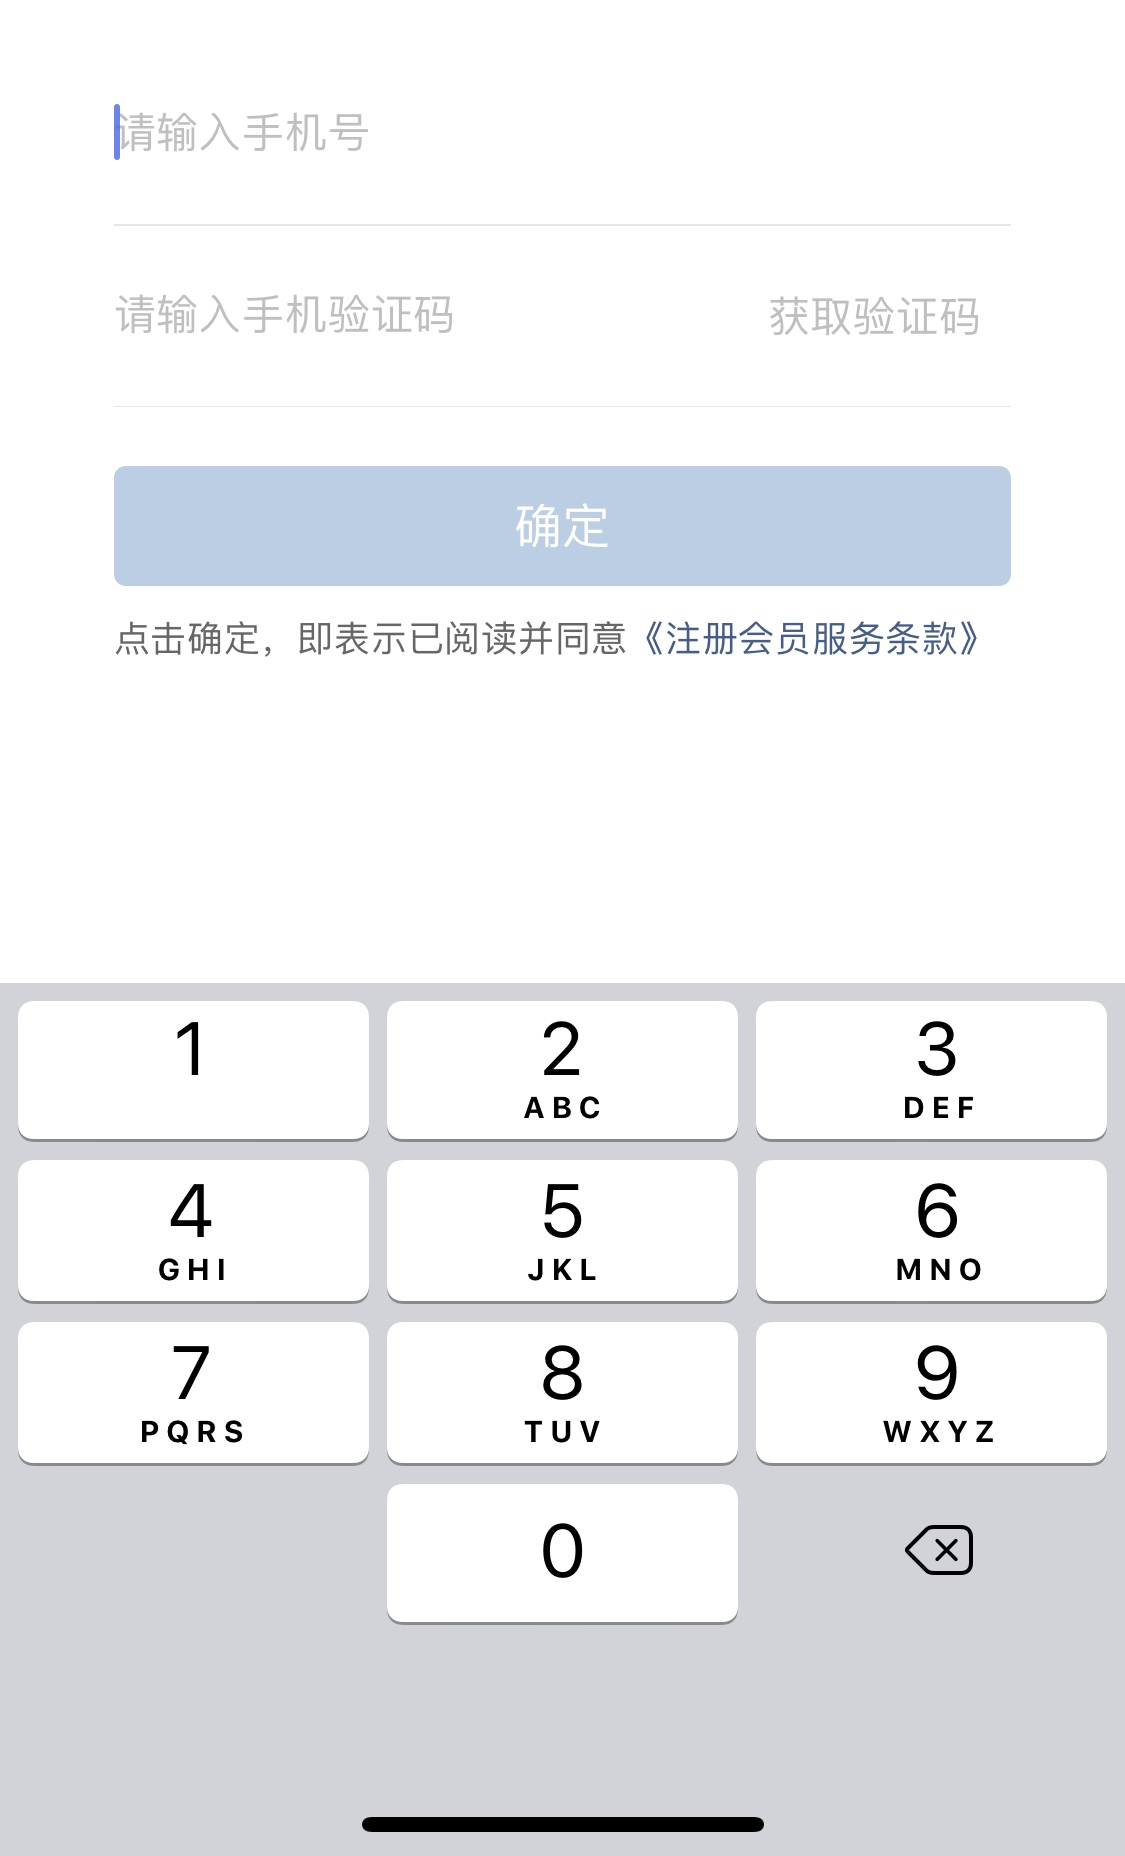 How to hide keyboard in ios · Issue #1058 · appium/java